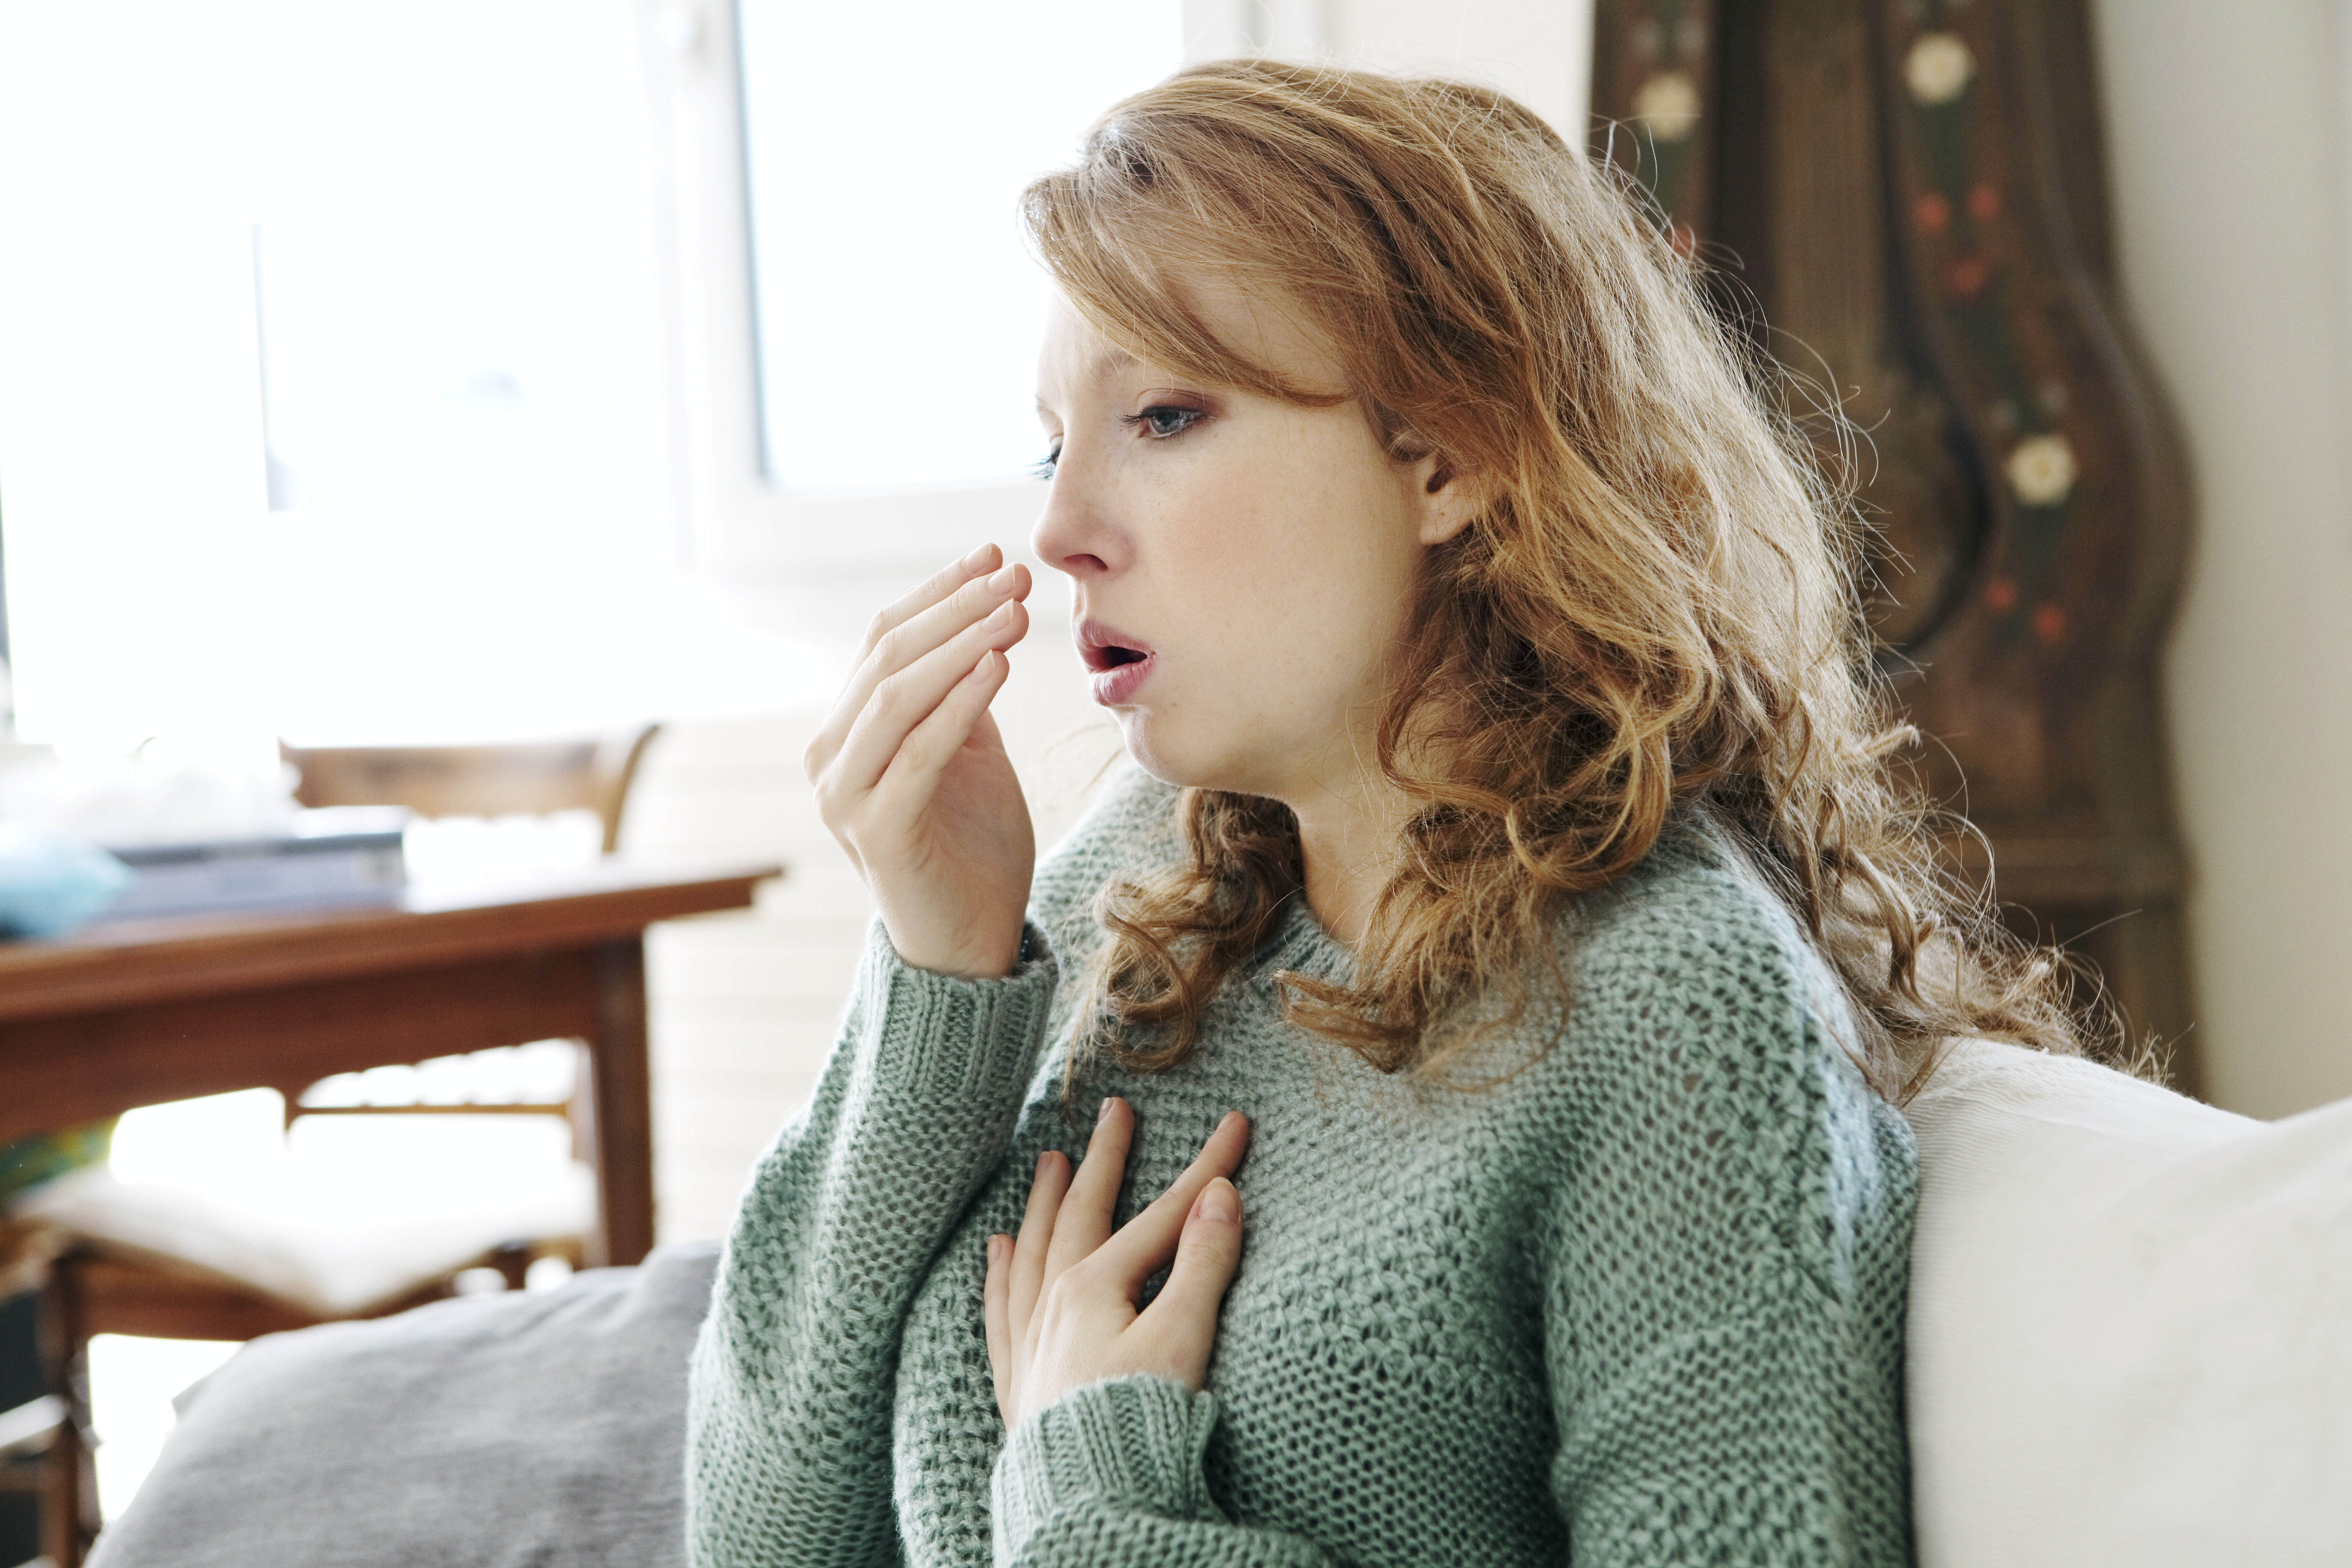 Exhaled Breath Condensate Revealed as a Promising Tool for Diagnosis of CF, Other Lung Diseases